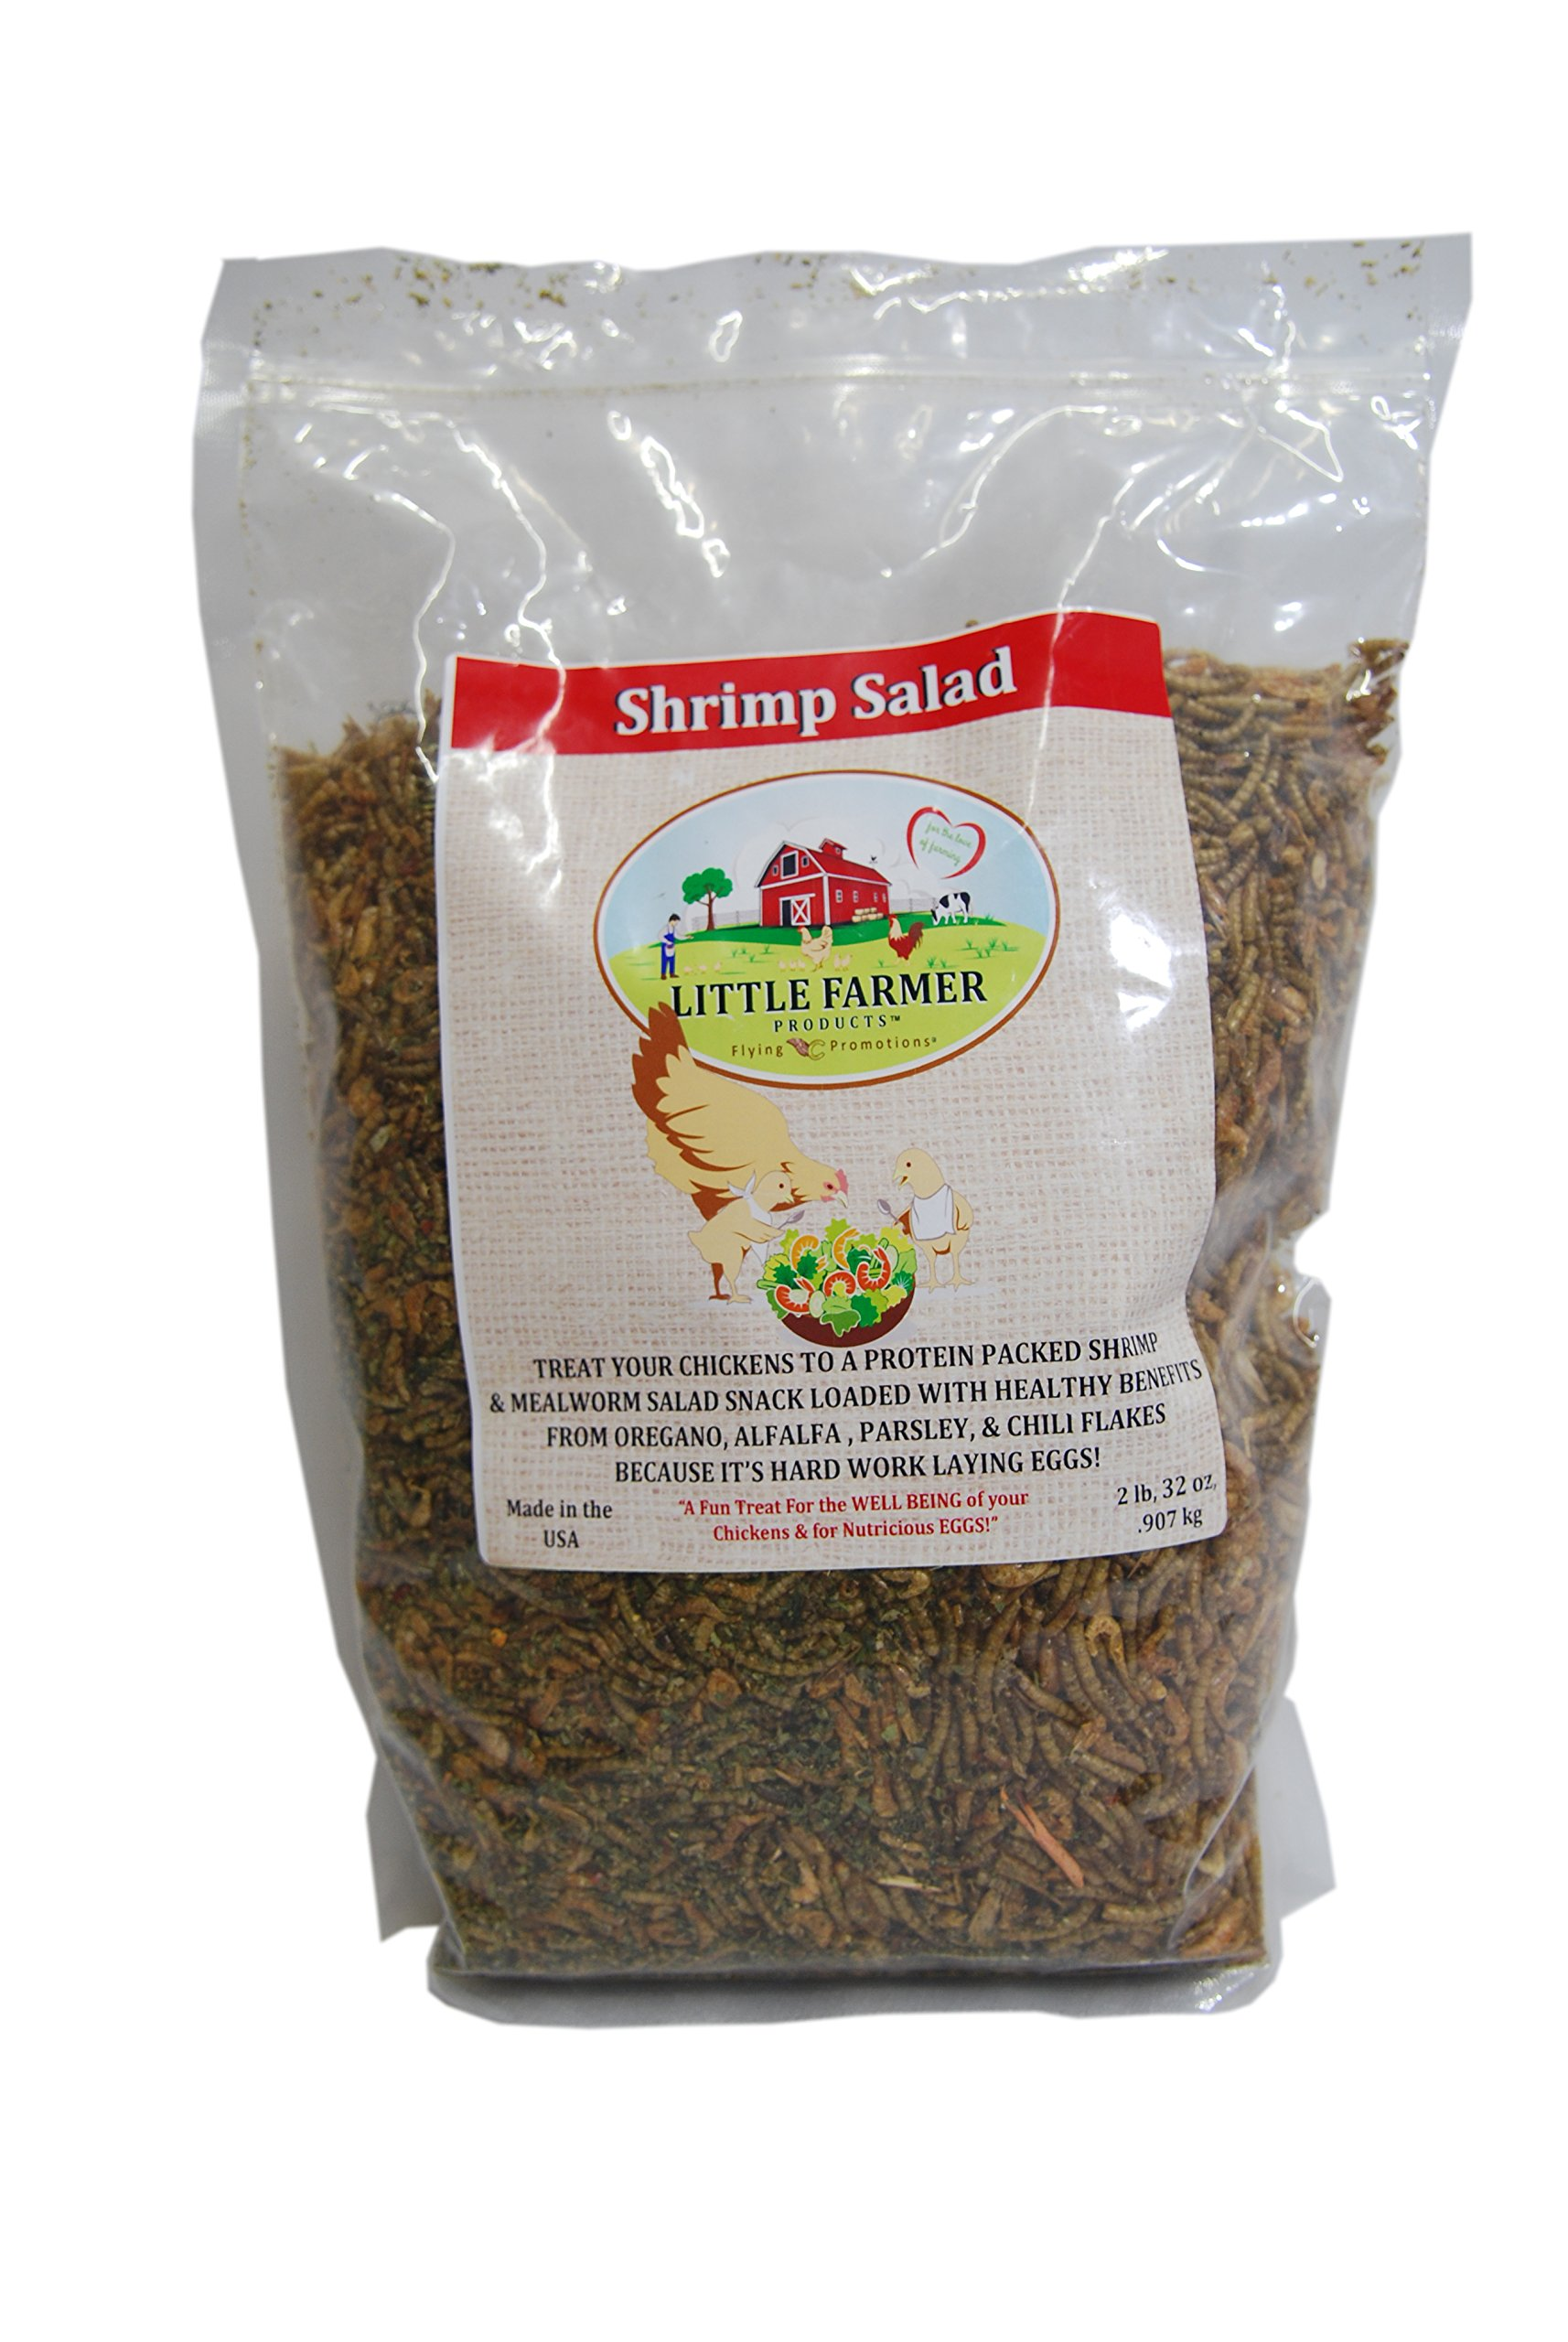 LITTLE FARMER PRODUCTS Shrimp Salad - Dried Mealworm, River Shrimp, Greens Chicken Treat   Premium Poultry Meal Worm & Herb Mix   2 lbs